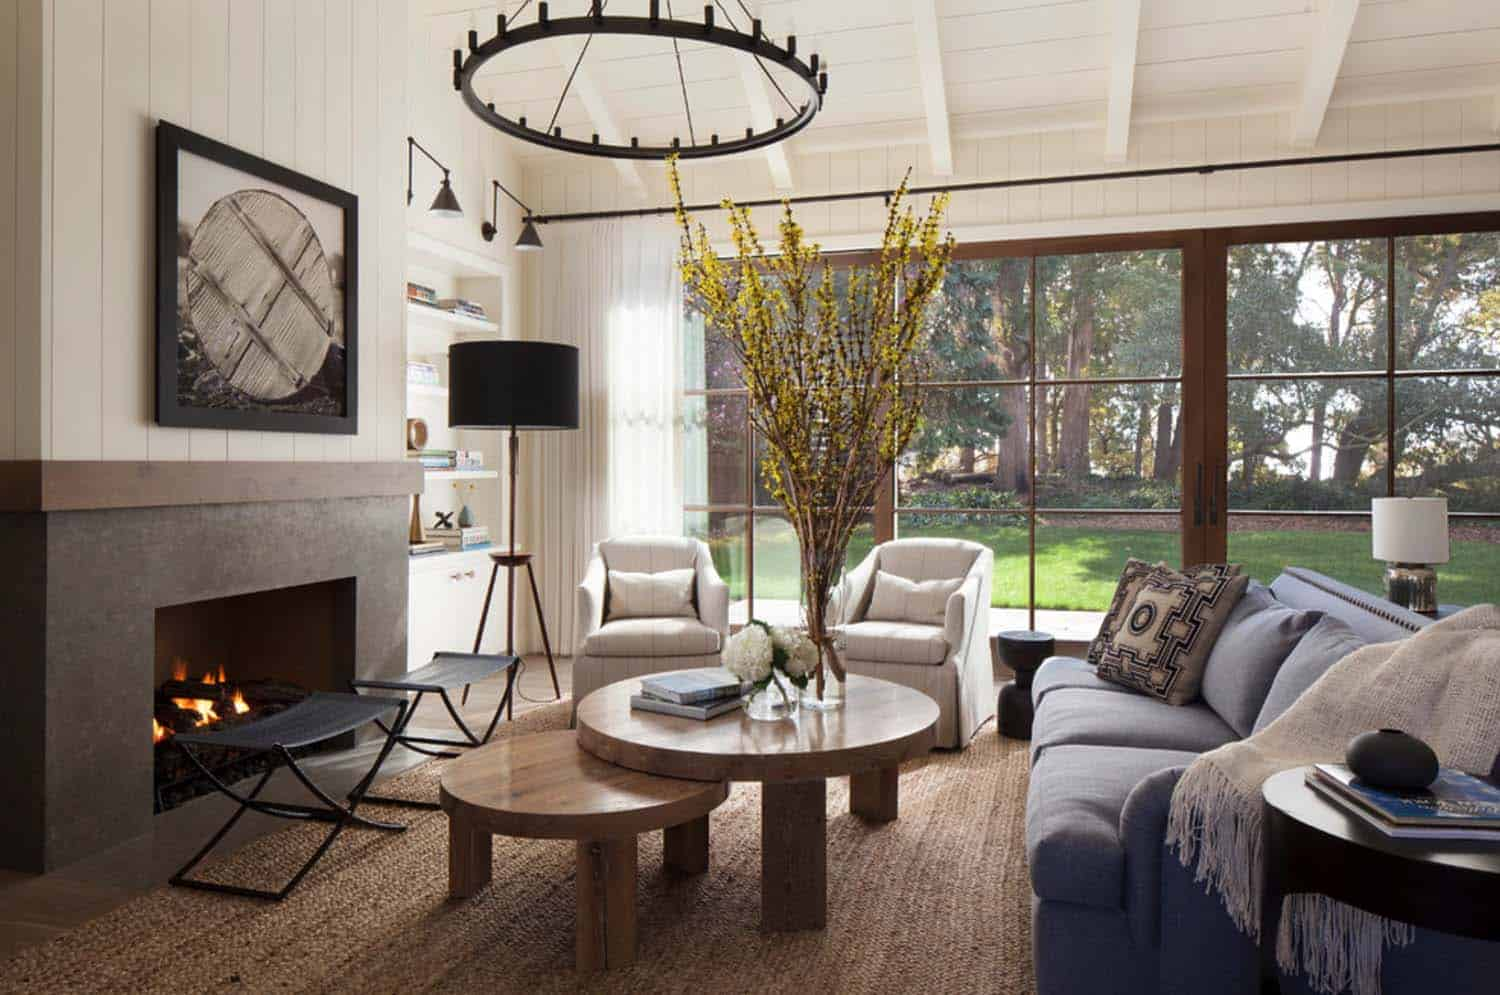 Images Of Modern Farmhouse Interiors Rustic Chic Farmhouse Style Dwelling In Northern California